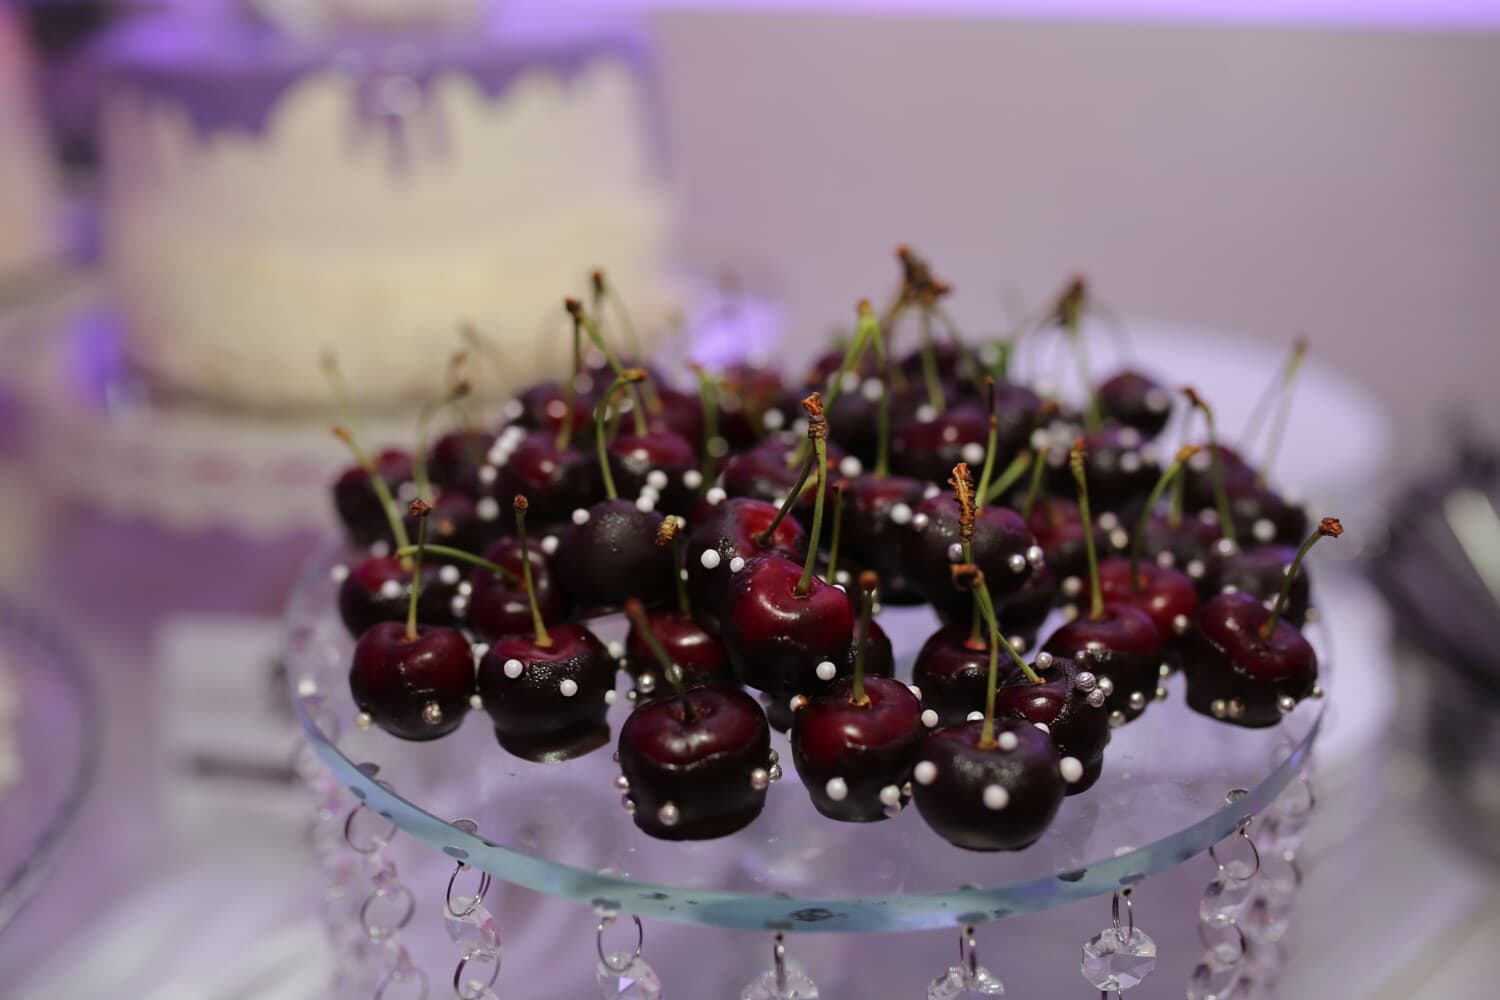 cherries, delicious, close-up, dessert, sweet, fruit, cherry, food, nature, color